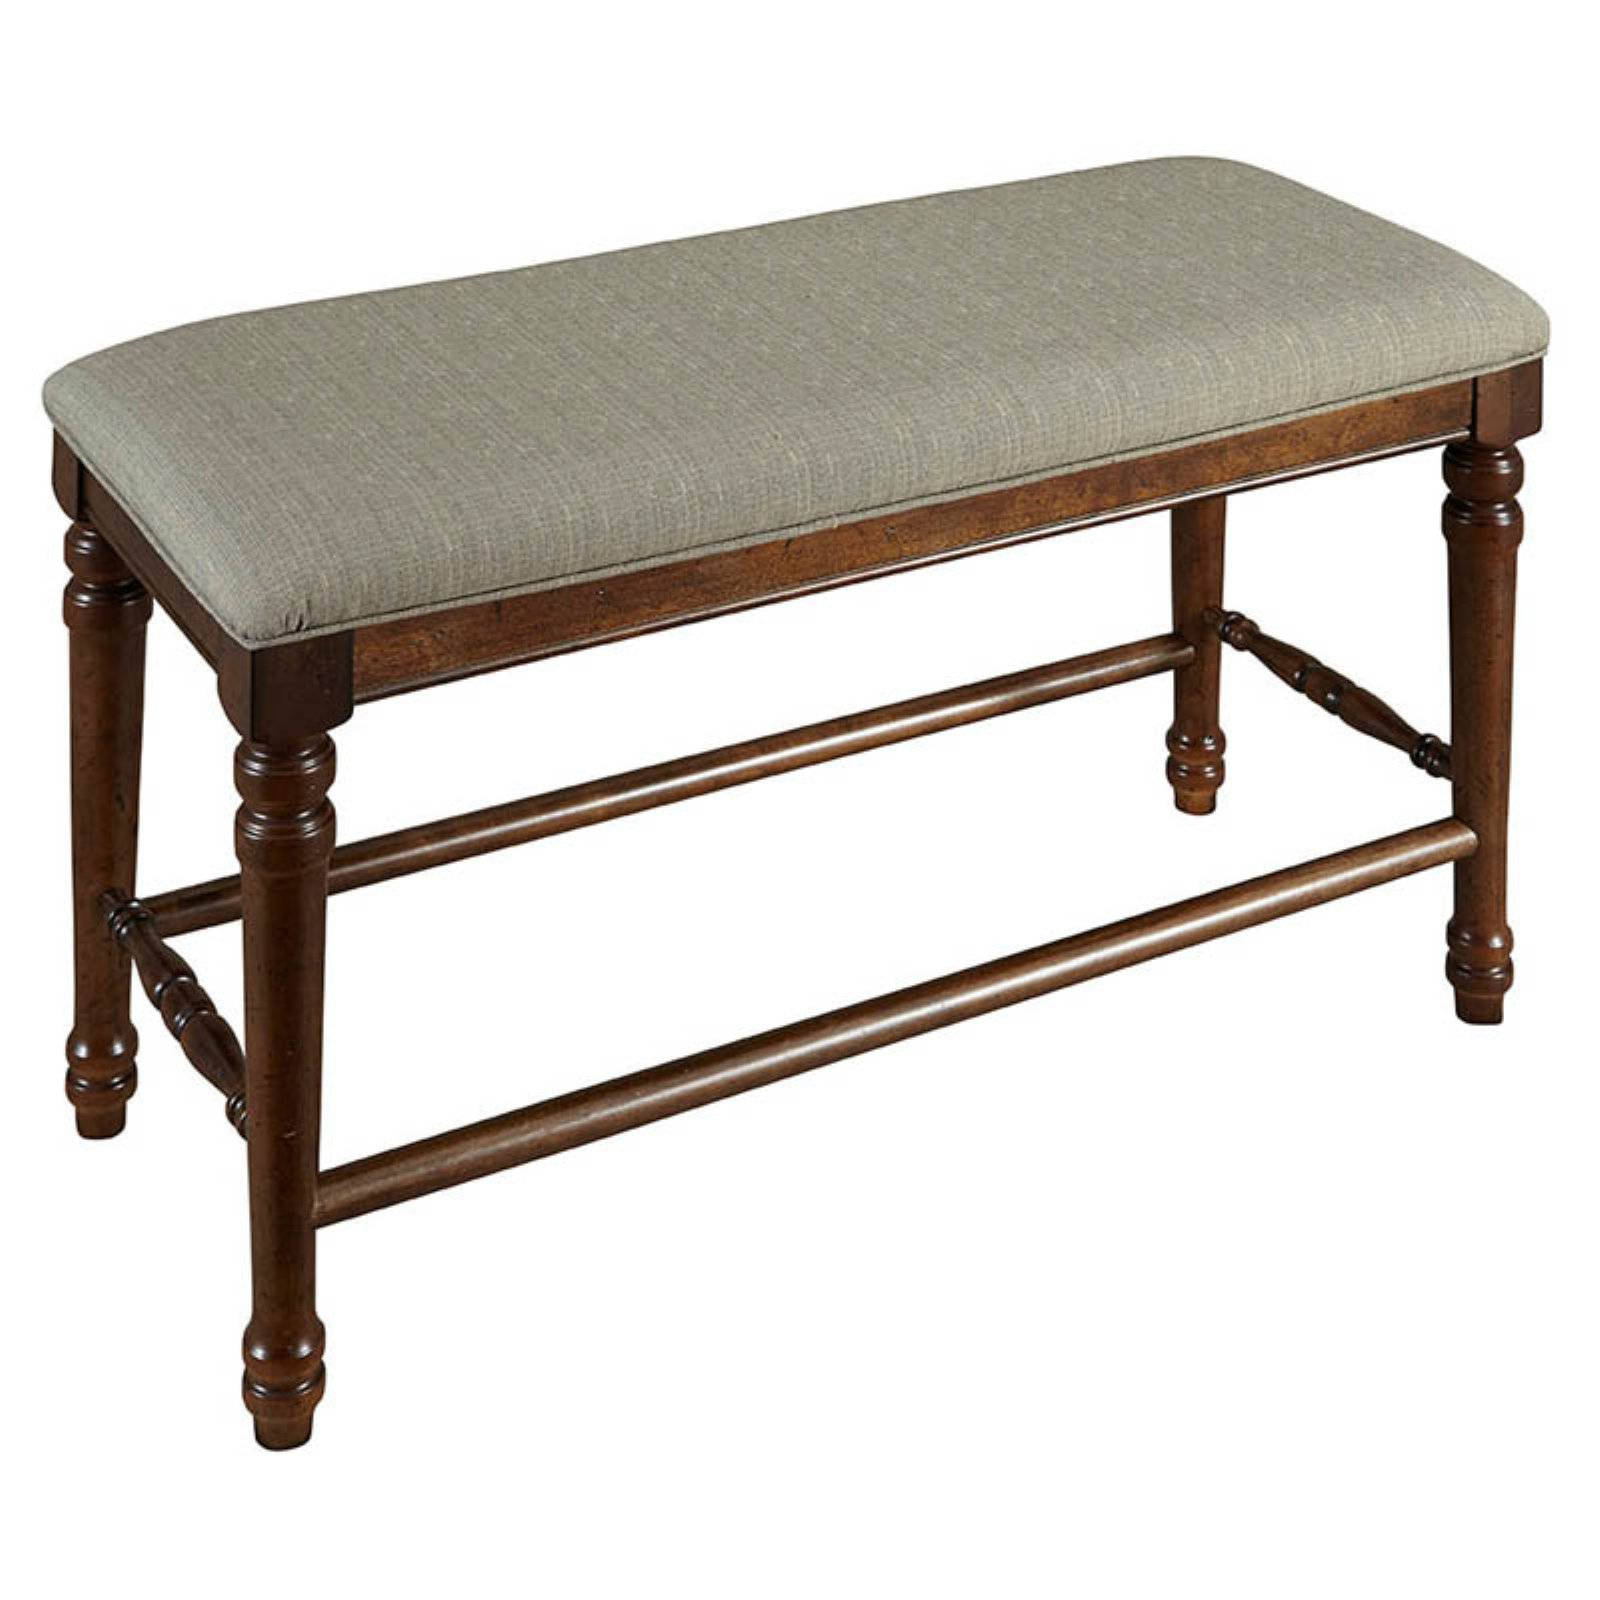 A-America Andover Counter Height Backless Bench with Upholstered Seat